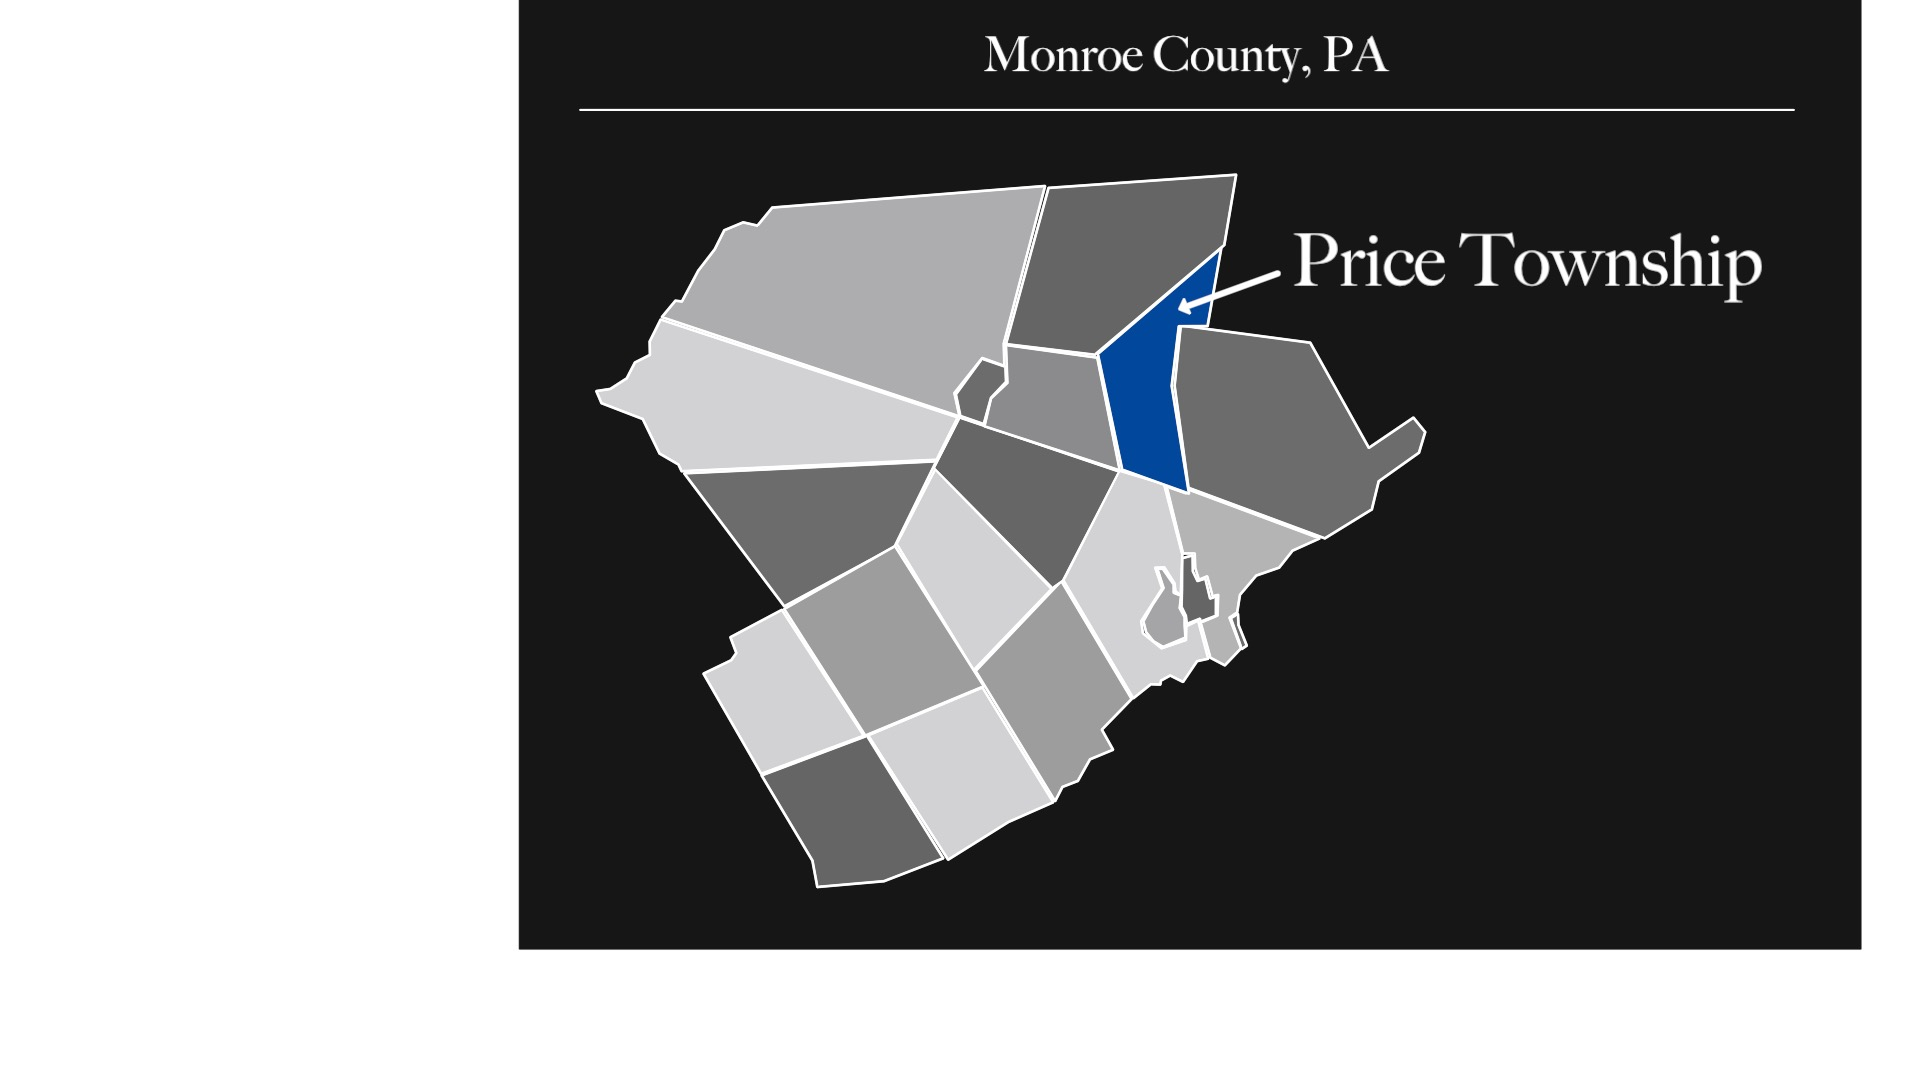 Ott Consulting Price Township Ott Consulting Appointed As Municipal Engineers For Price Township, Monroe County, PA